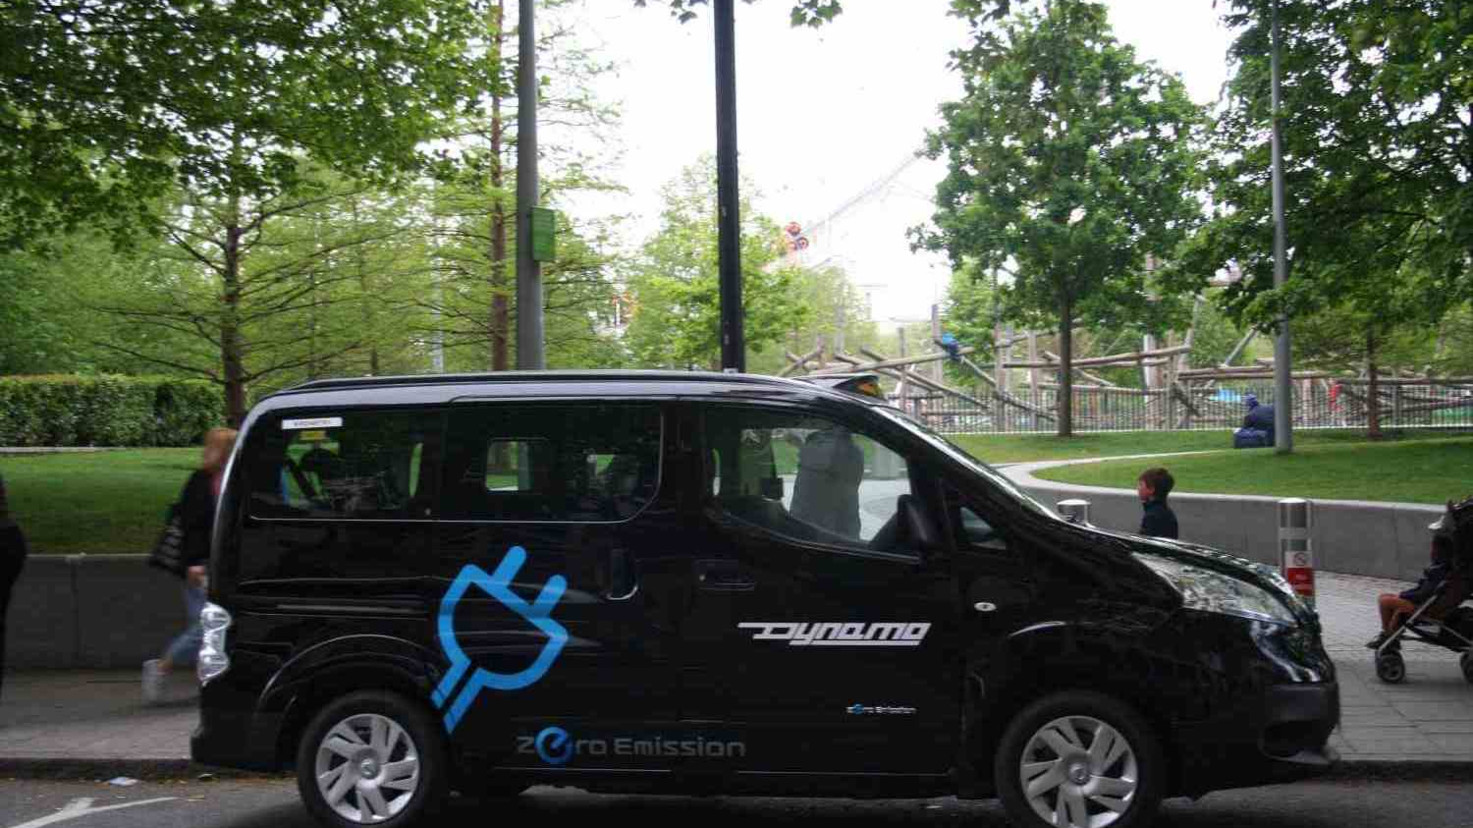 First electric taxi launches in London amidst plans to combat pollution